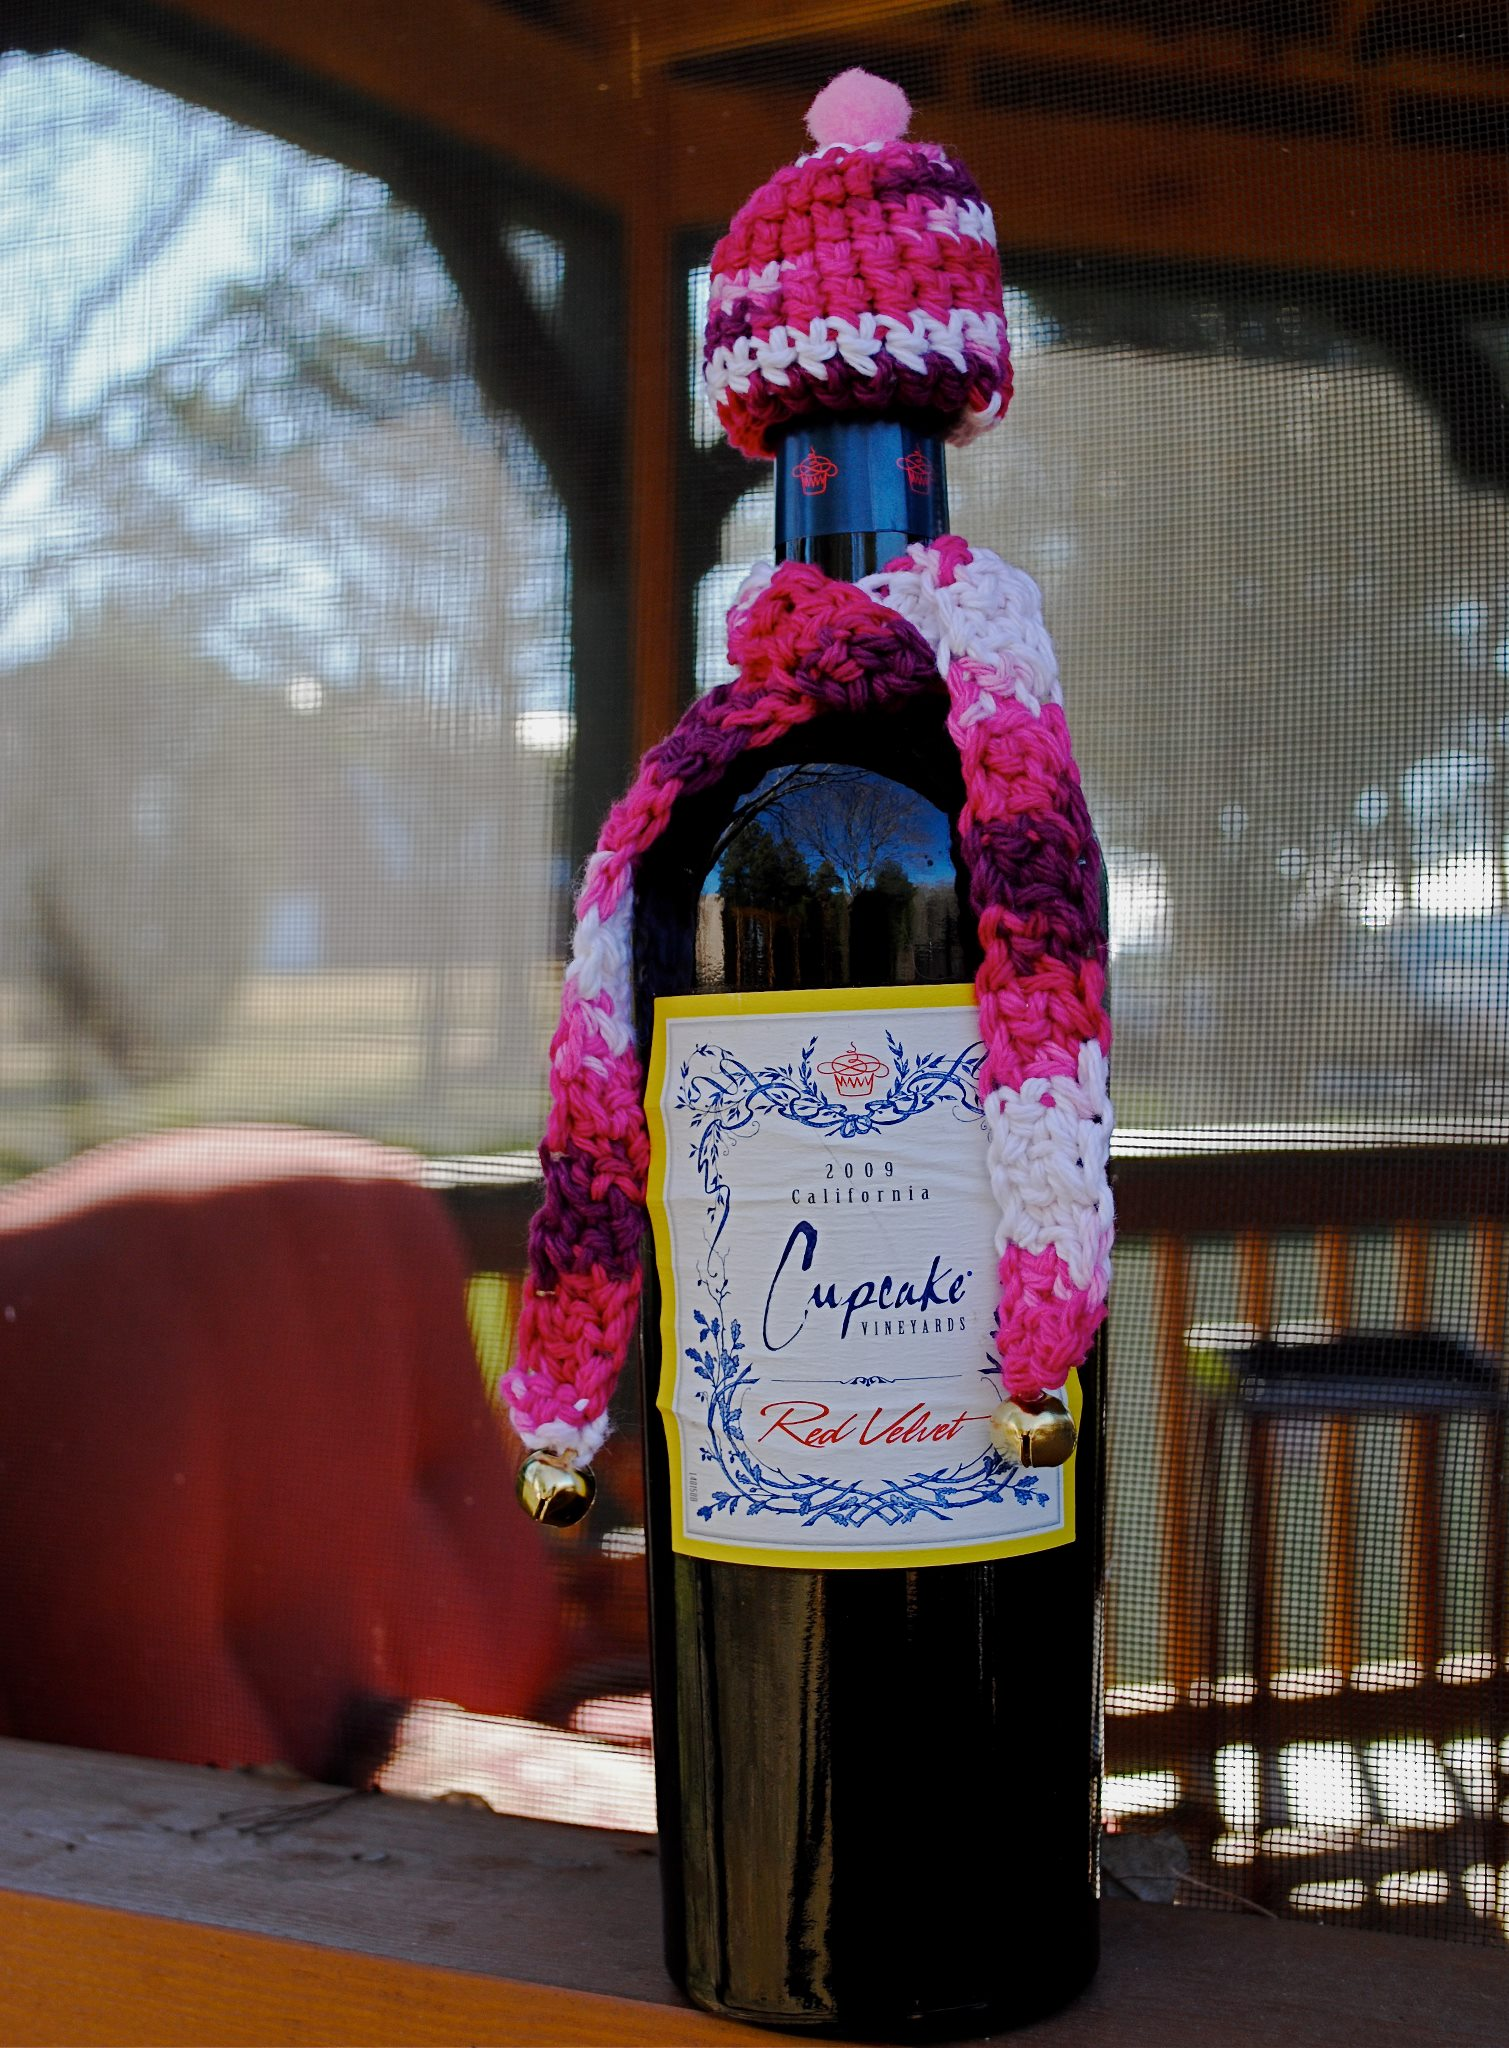 Dress up your wine for a warm Valentine's night…